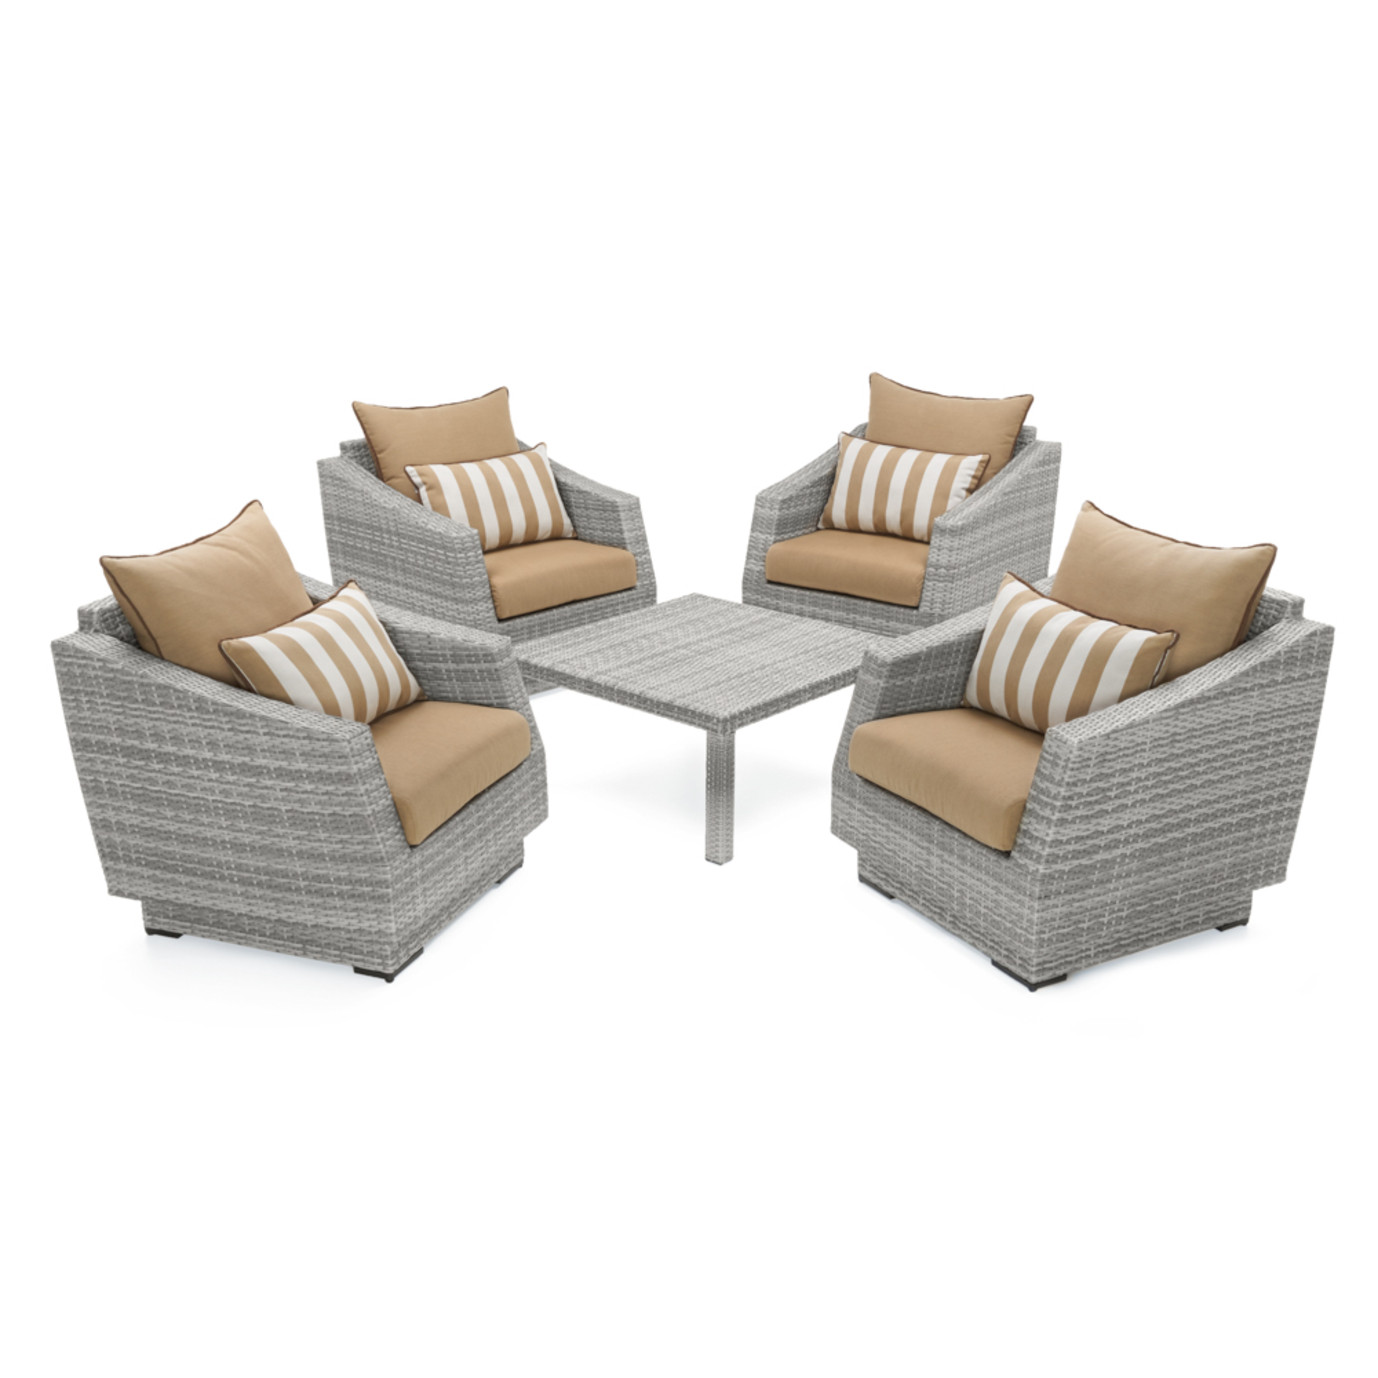 Cannes™ 5pc Club & Table Chat Set - Maxim Beige